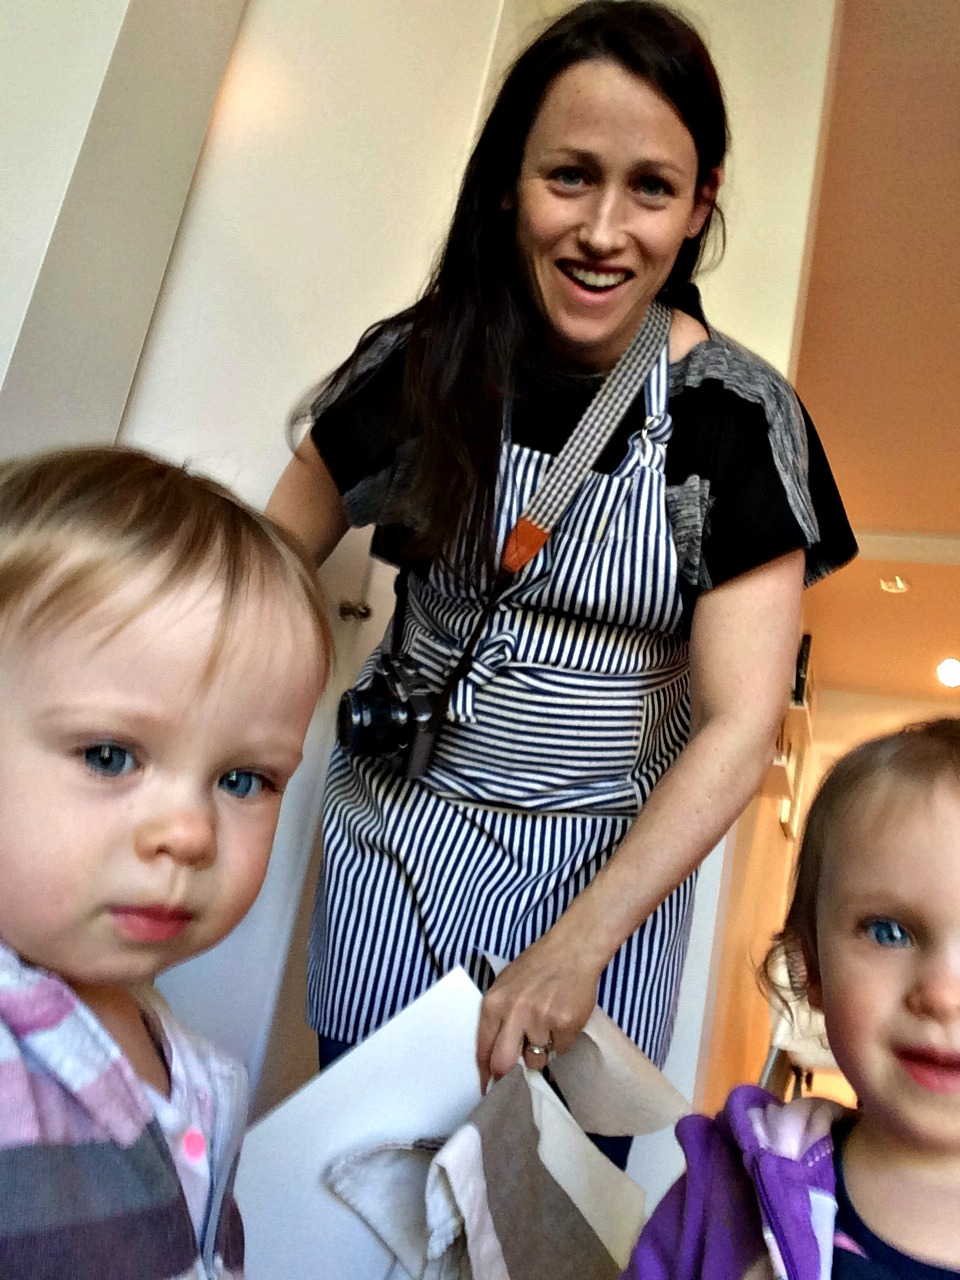 a brunette with an apron one and a camera around her neck with 2 toddlers.